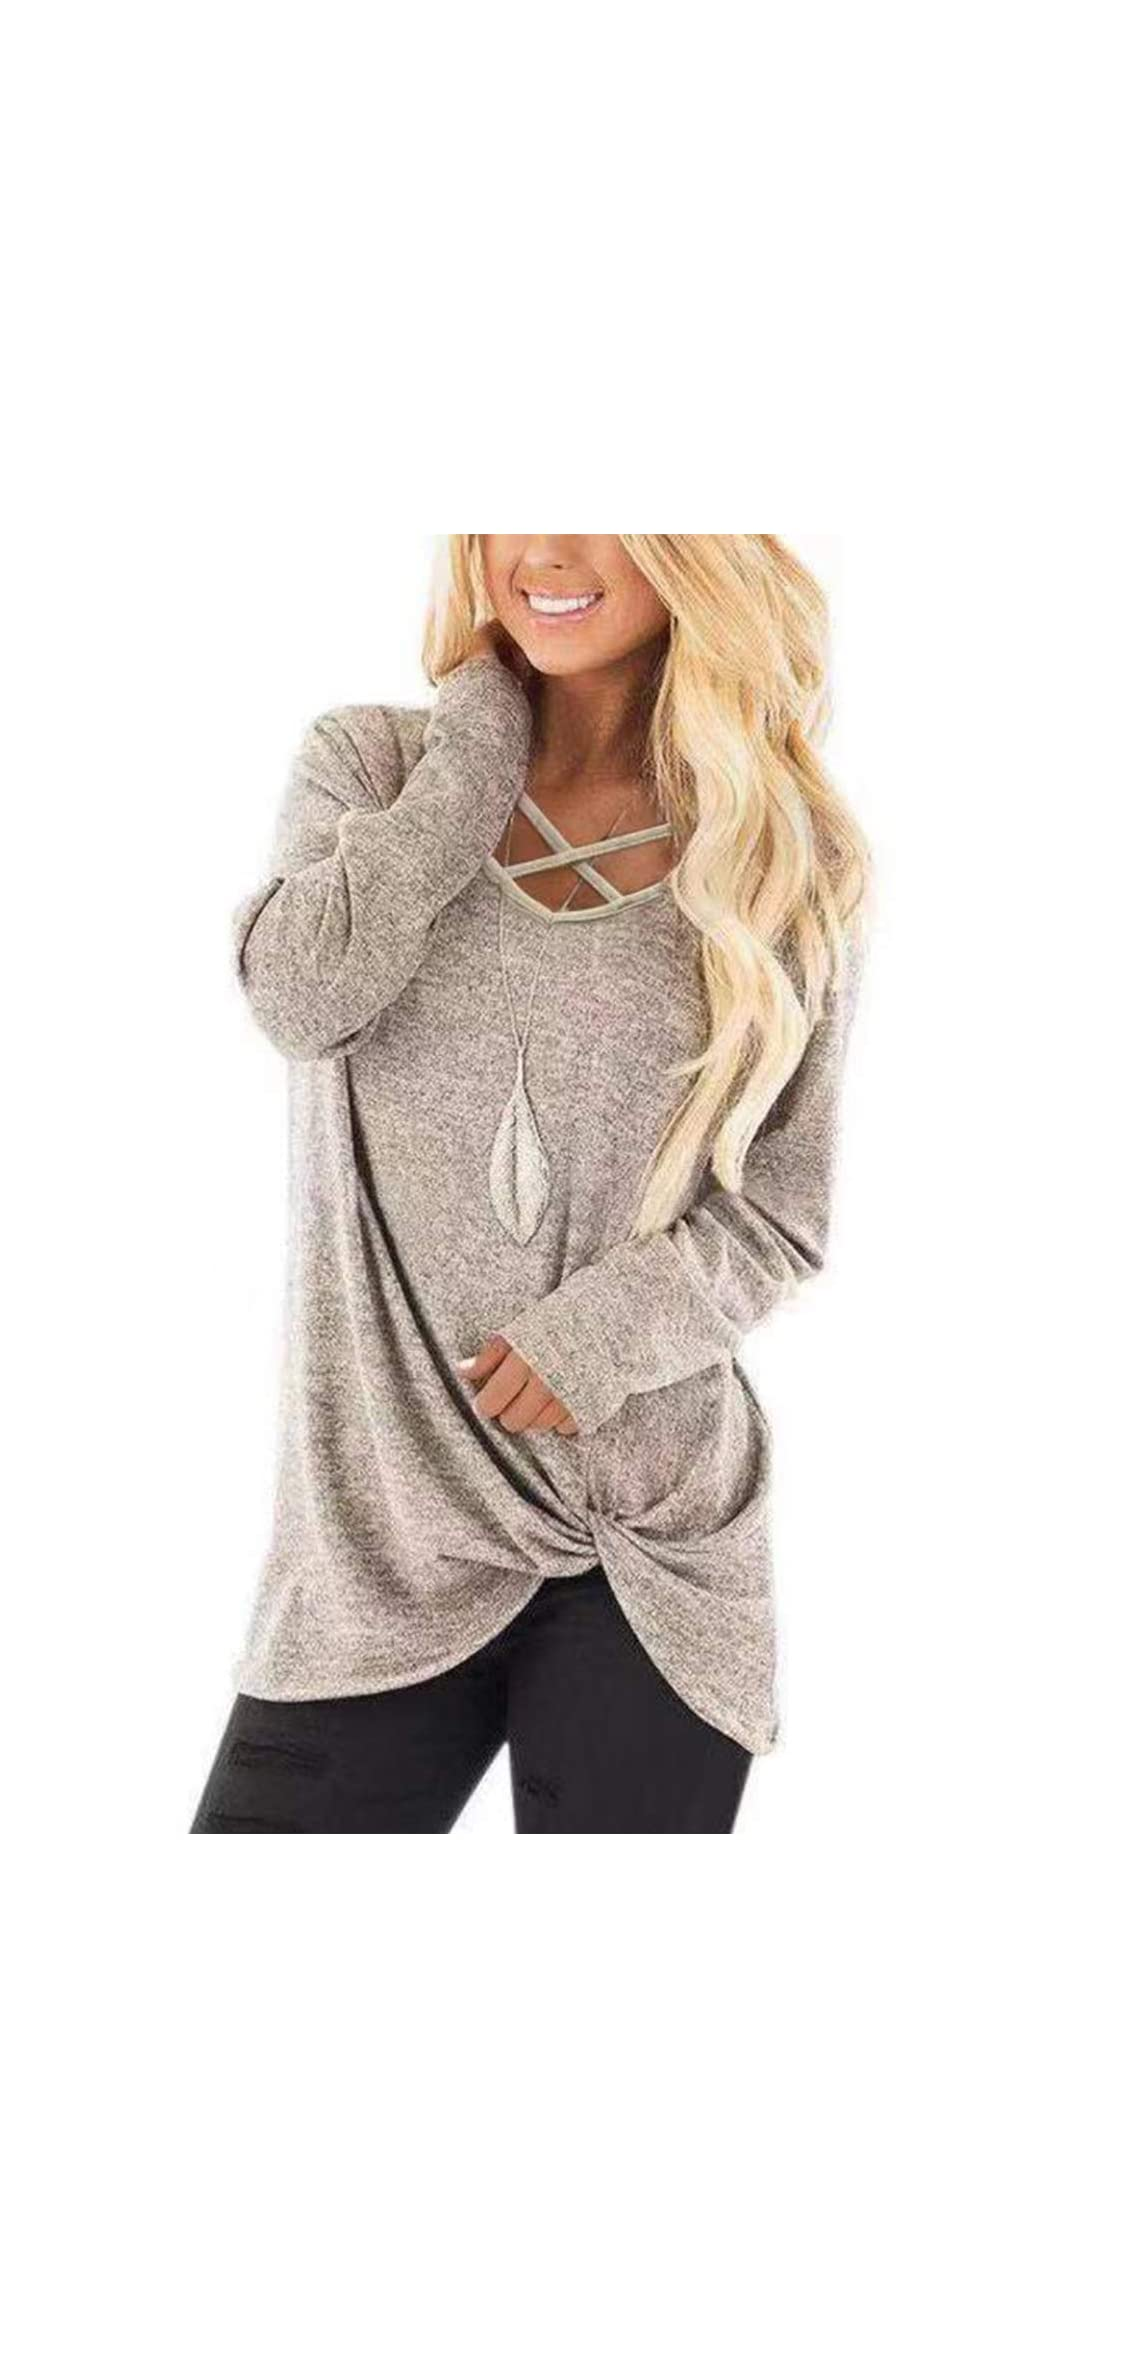 Womens V Neck Long Sleeves Casual Soft Sweaters Pullover